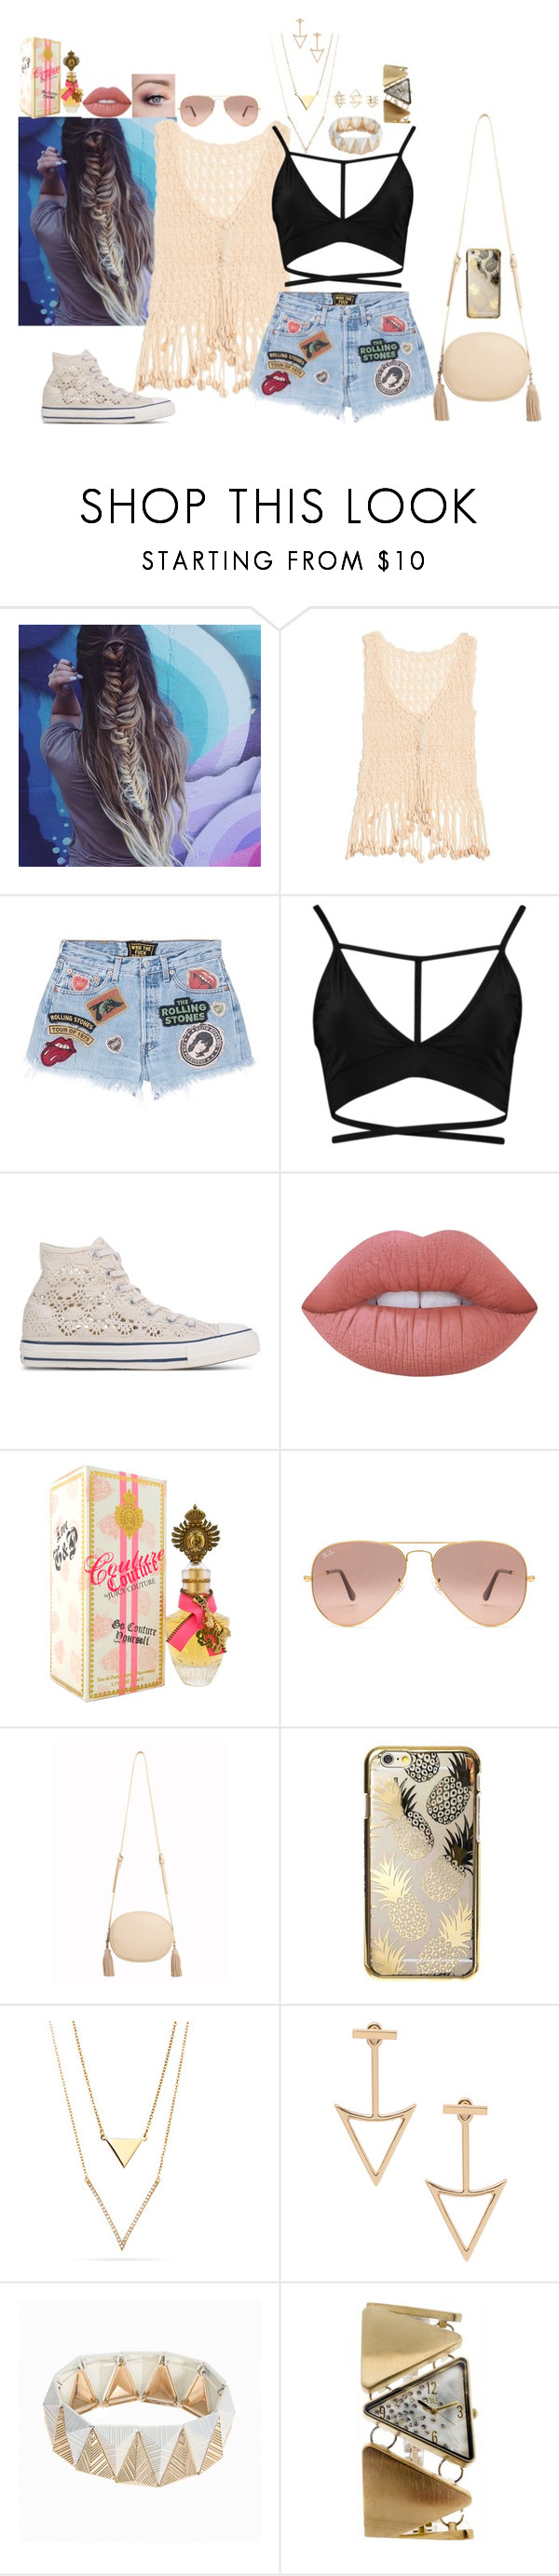 """Untitled #1110"" by babybren-fany ❤ liked on Polyvore featuring Anna Kosturova, MadeWorn, Converse, Lime Crime, Juicy Couture, Ray-Ban, MANGO, Skinnydip, N:U - Not the Usual and Charlotte Russe"